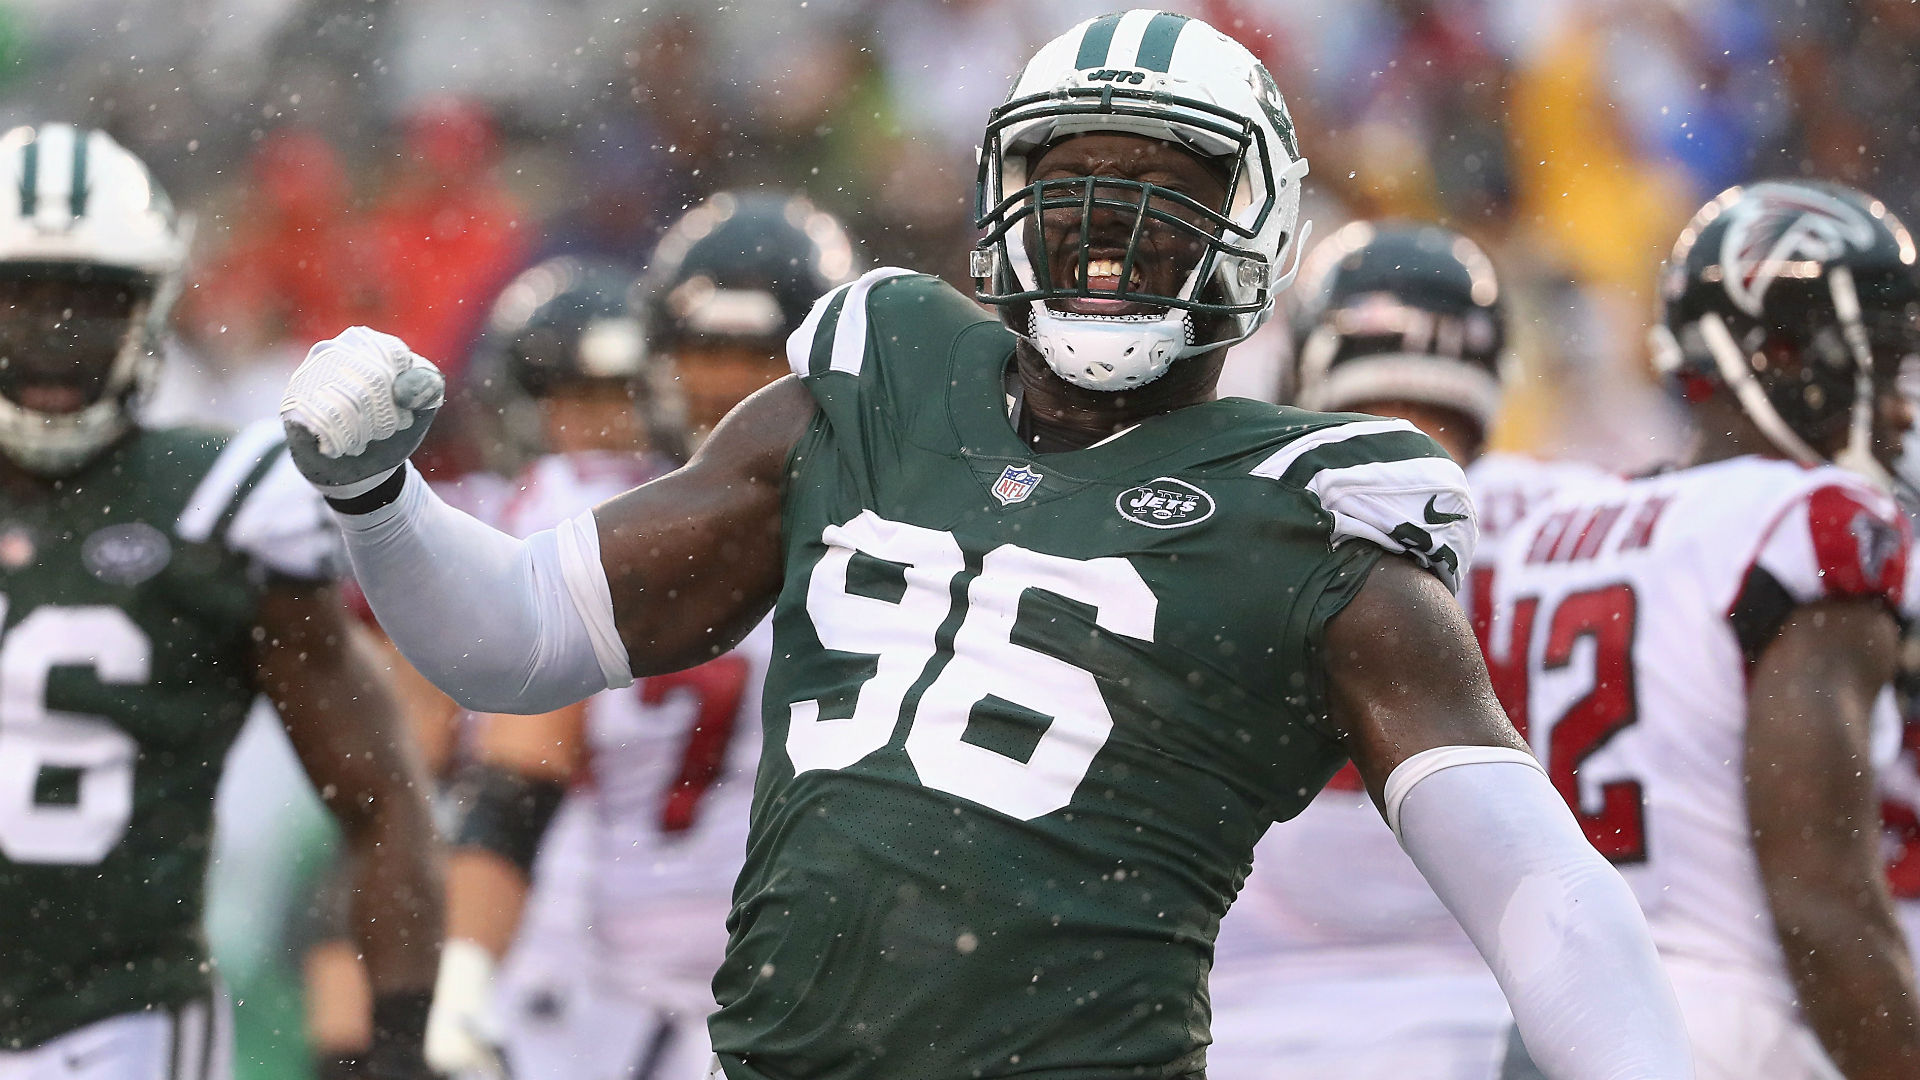 The New York Jets informed defensive lineman Mo Wilkerson of his release after eight seasons on Wednesday.